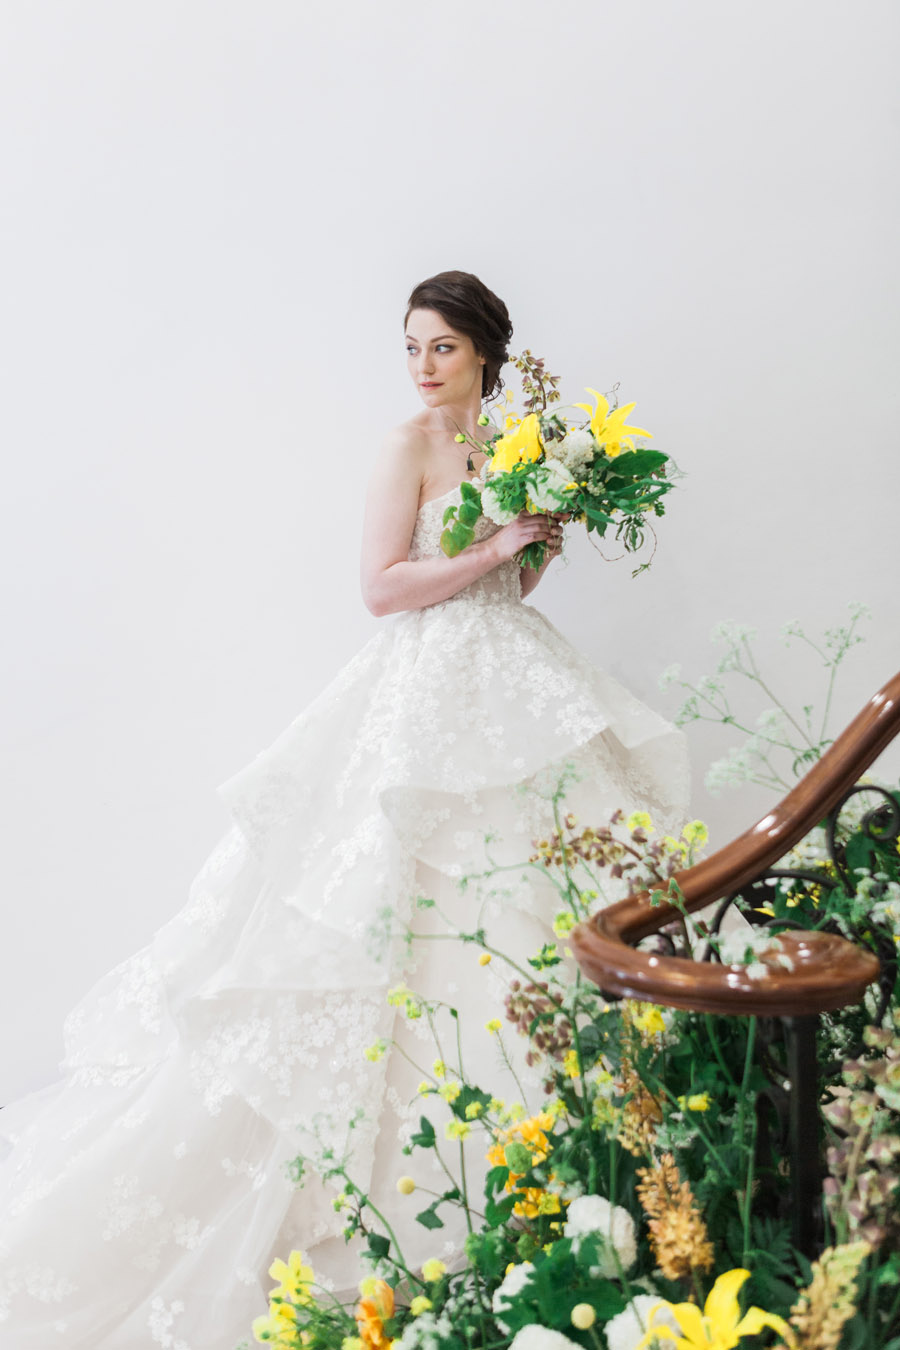 Glorious yellow Bloomologie blooms and styling by Chenai - photo credit Amanda Karen Photography (6)